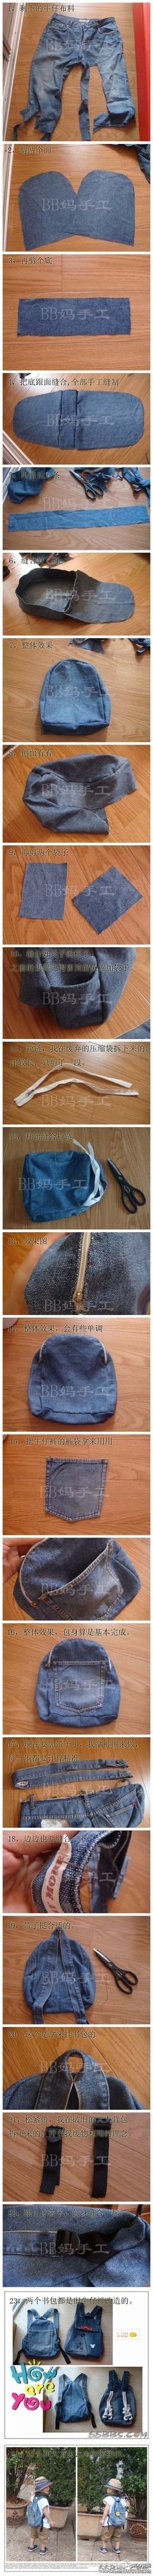 jean backpack DIY by bonniemae